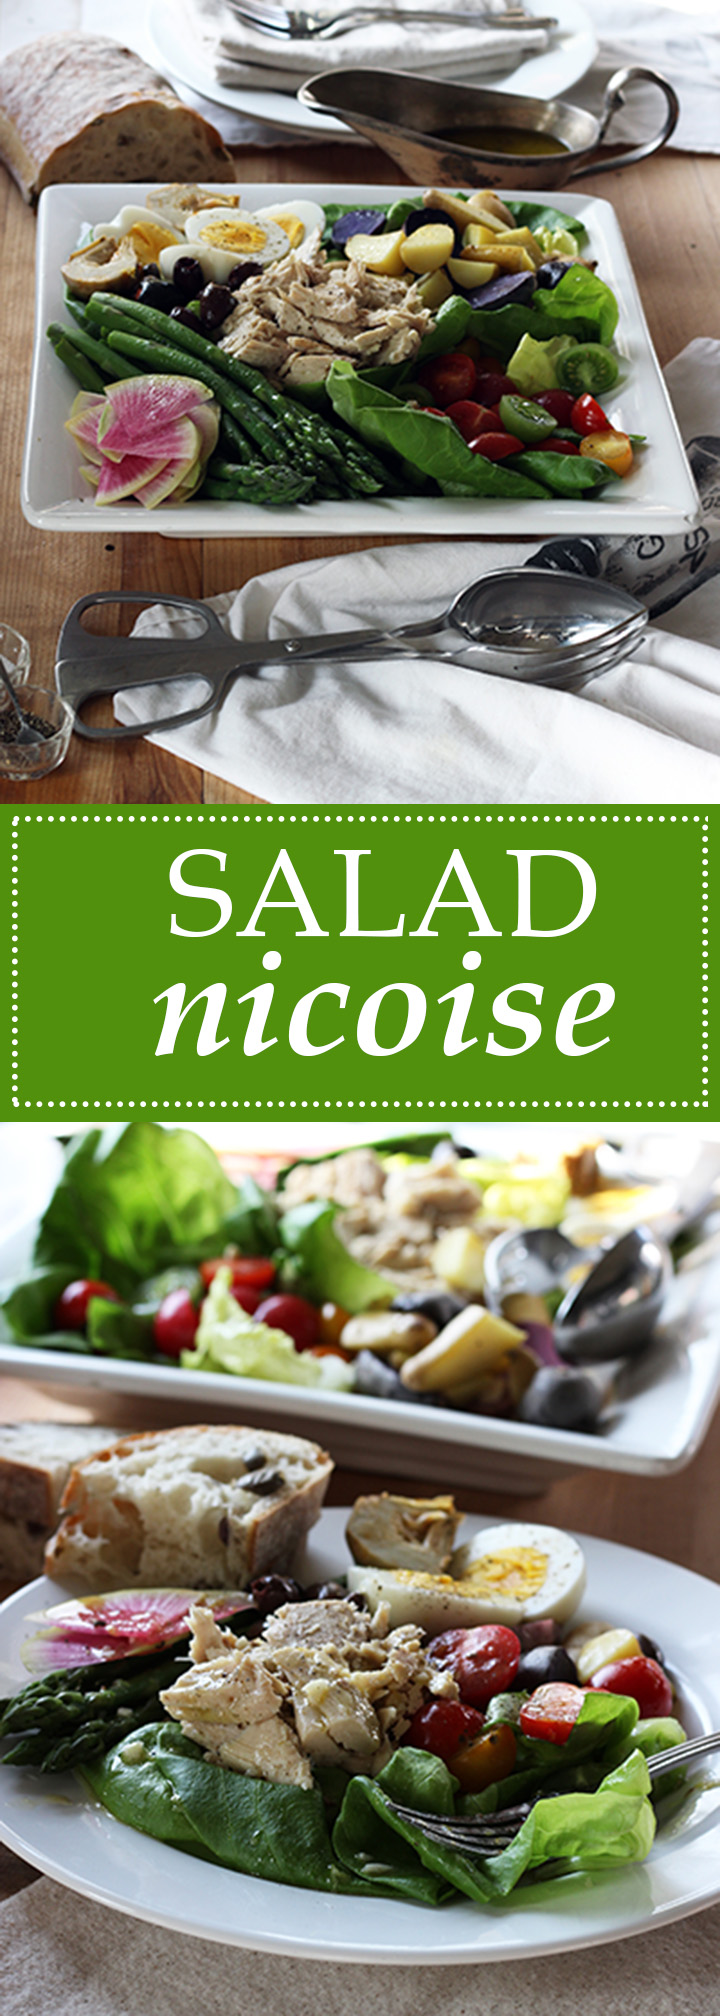 Salad Nicoise | www.thetableofcontents.co